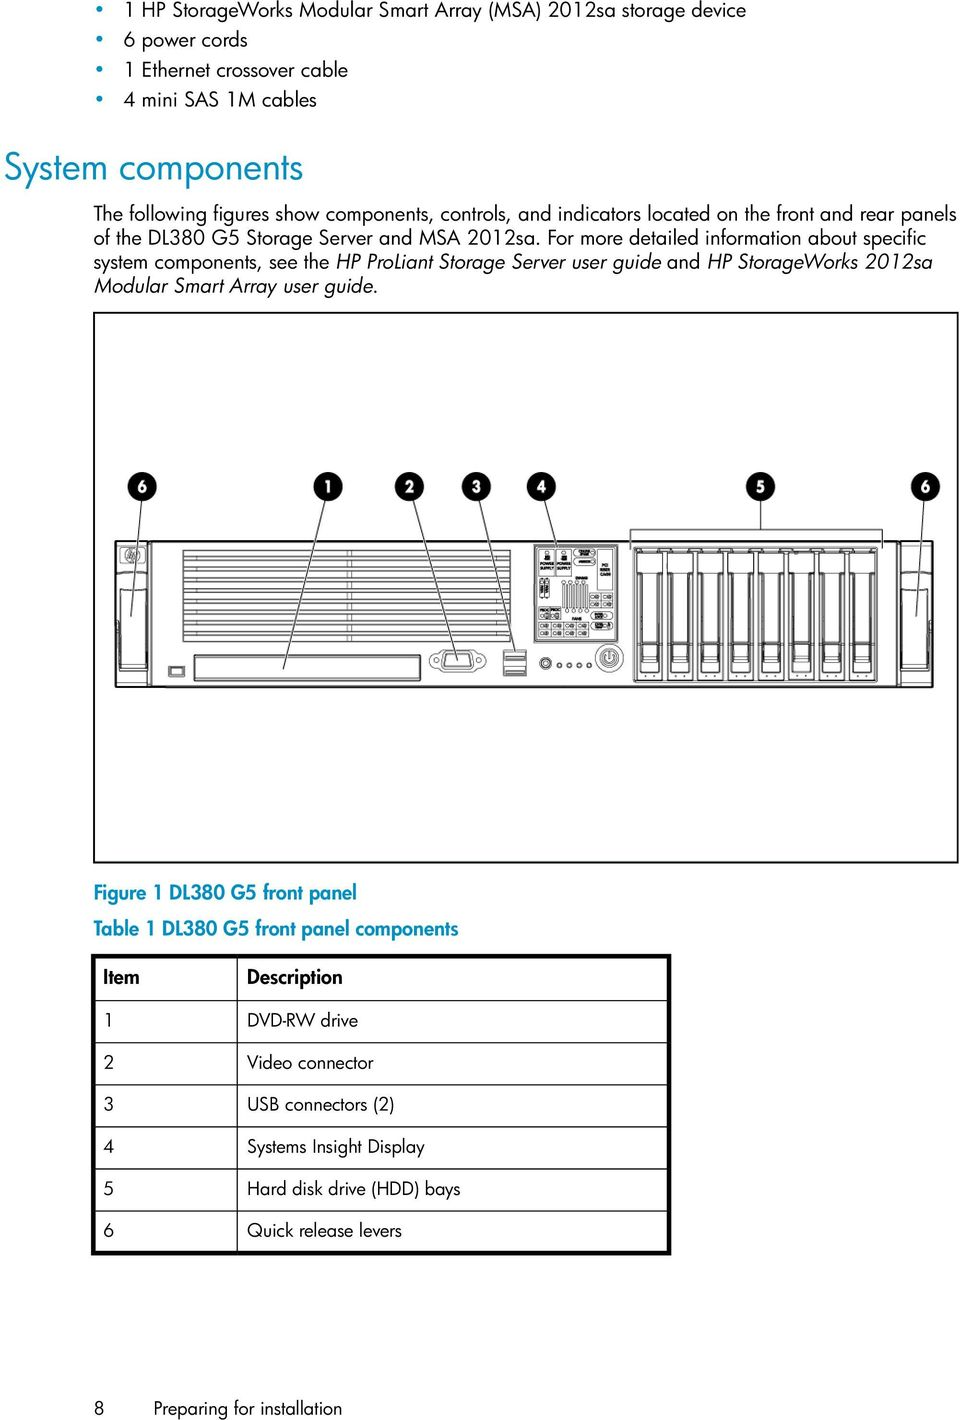 For more detailed information about specific system components, see the HP ProLiant Storage Server user guide and HP StorageWorks 2012sa Modular Smart Array user guide.